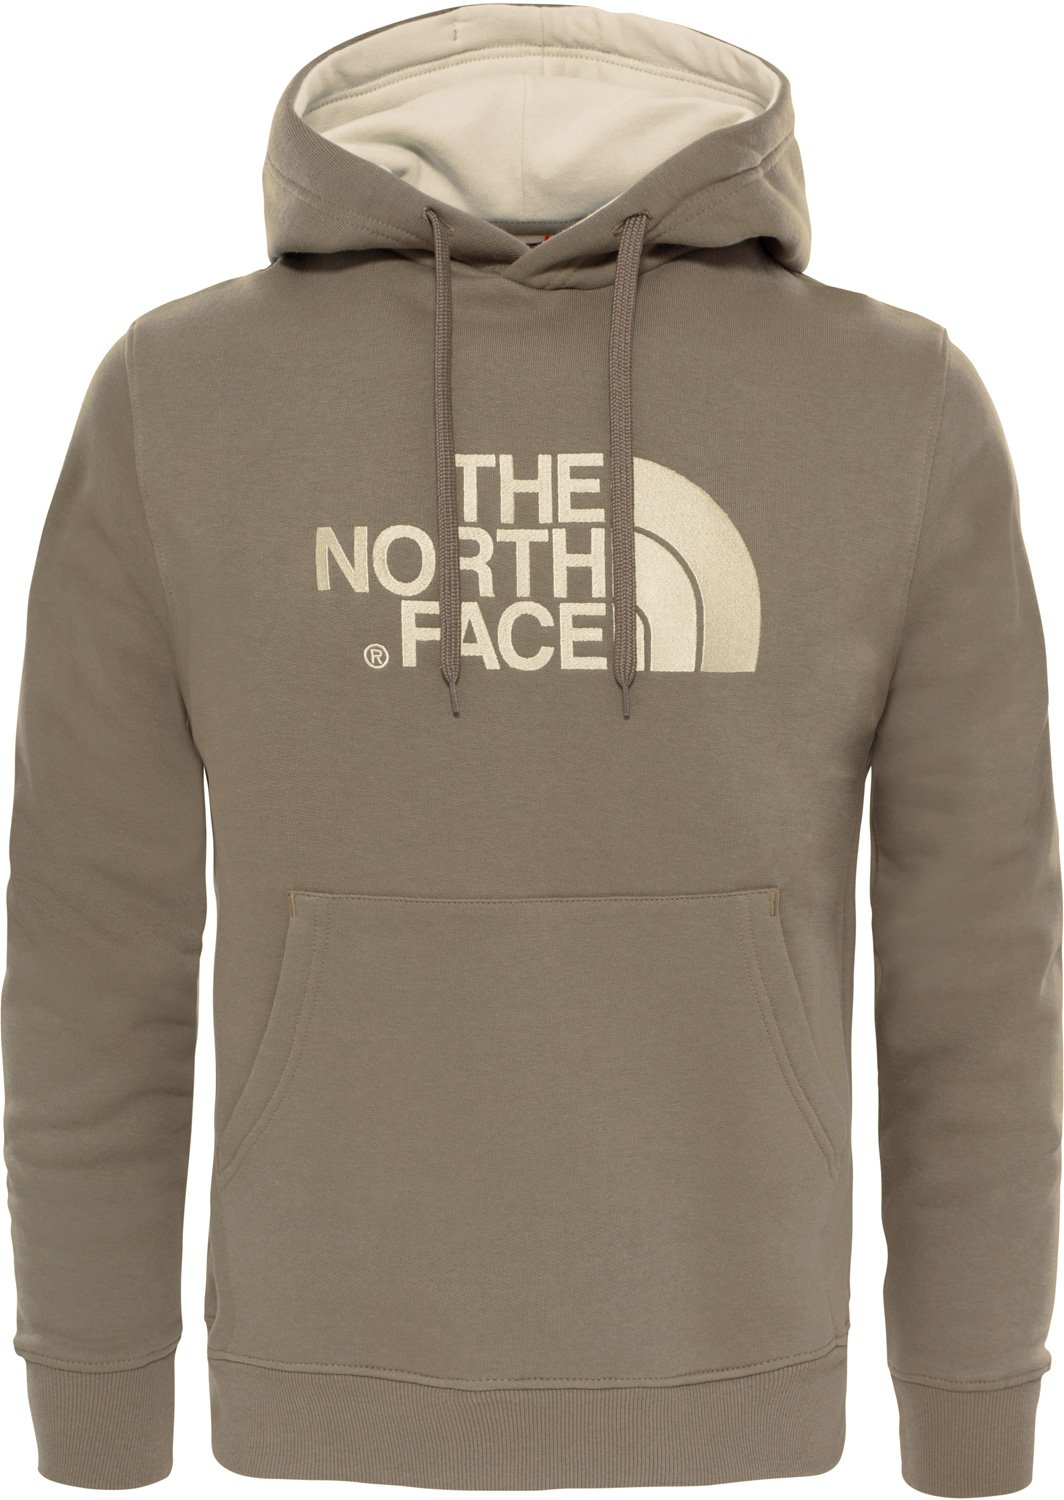 The North Face Herren Drew Peak Kapuzenpullover